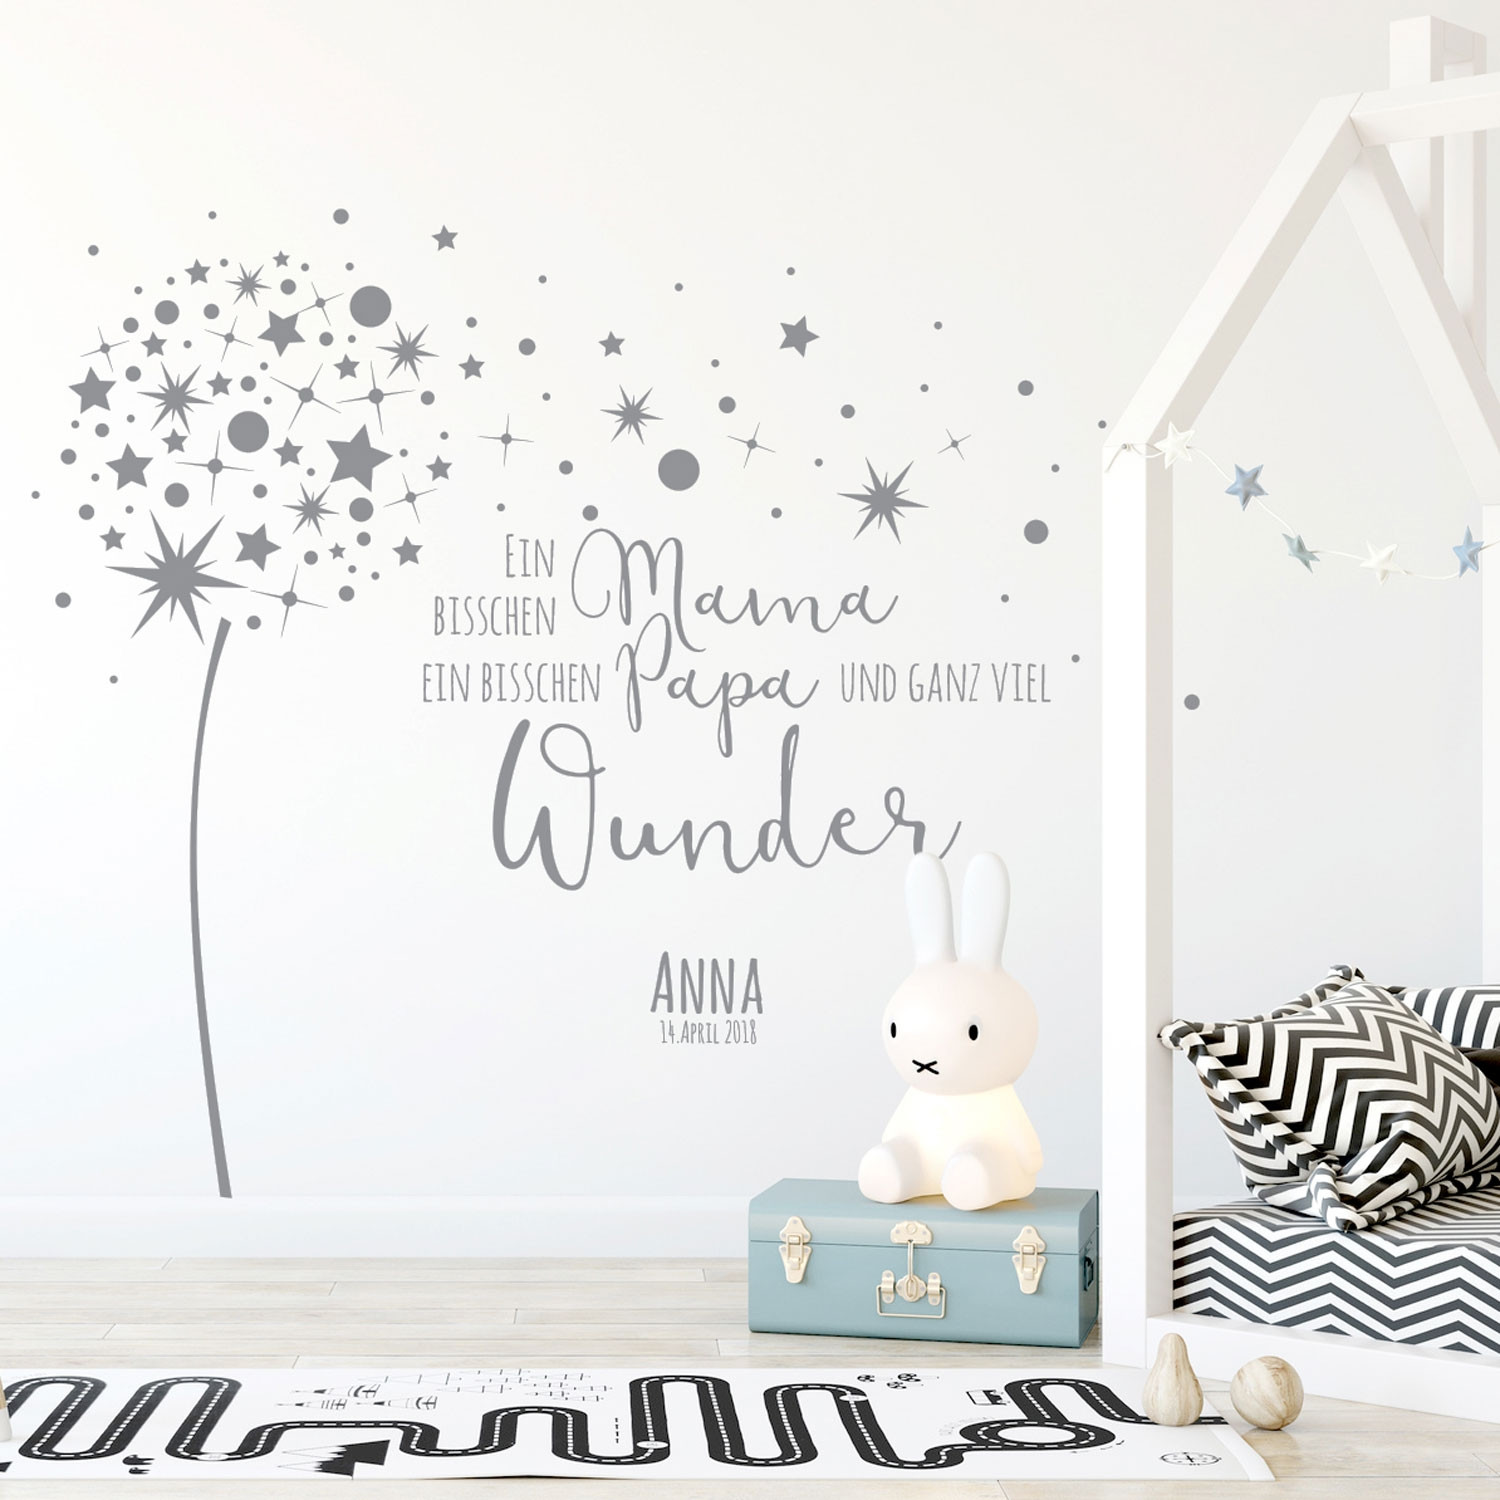 Wall Decal Dandelion Quote Vinyl Decal With Saying Wonder Baby Child Room Decoration With Desired Name And Date M2342 Wall Decals Bumper Sticker Murals Bags Cups Backpacks And Many More At